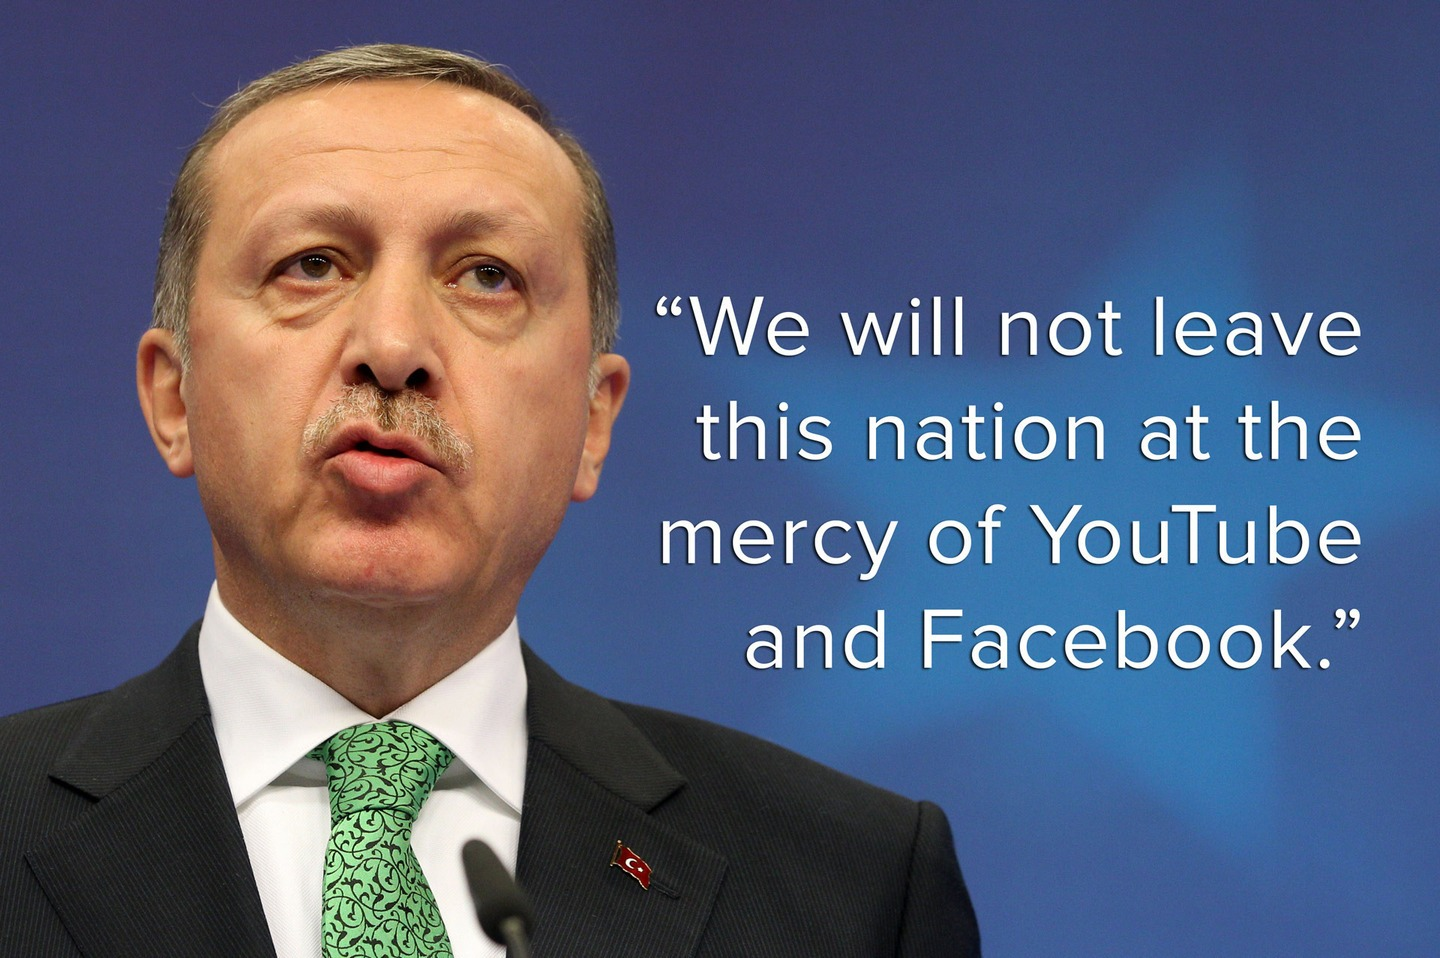 """We will not leave this nation at the mercy of YouTube and Facebook,"" Erdoğan said on March 7, 2014."